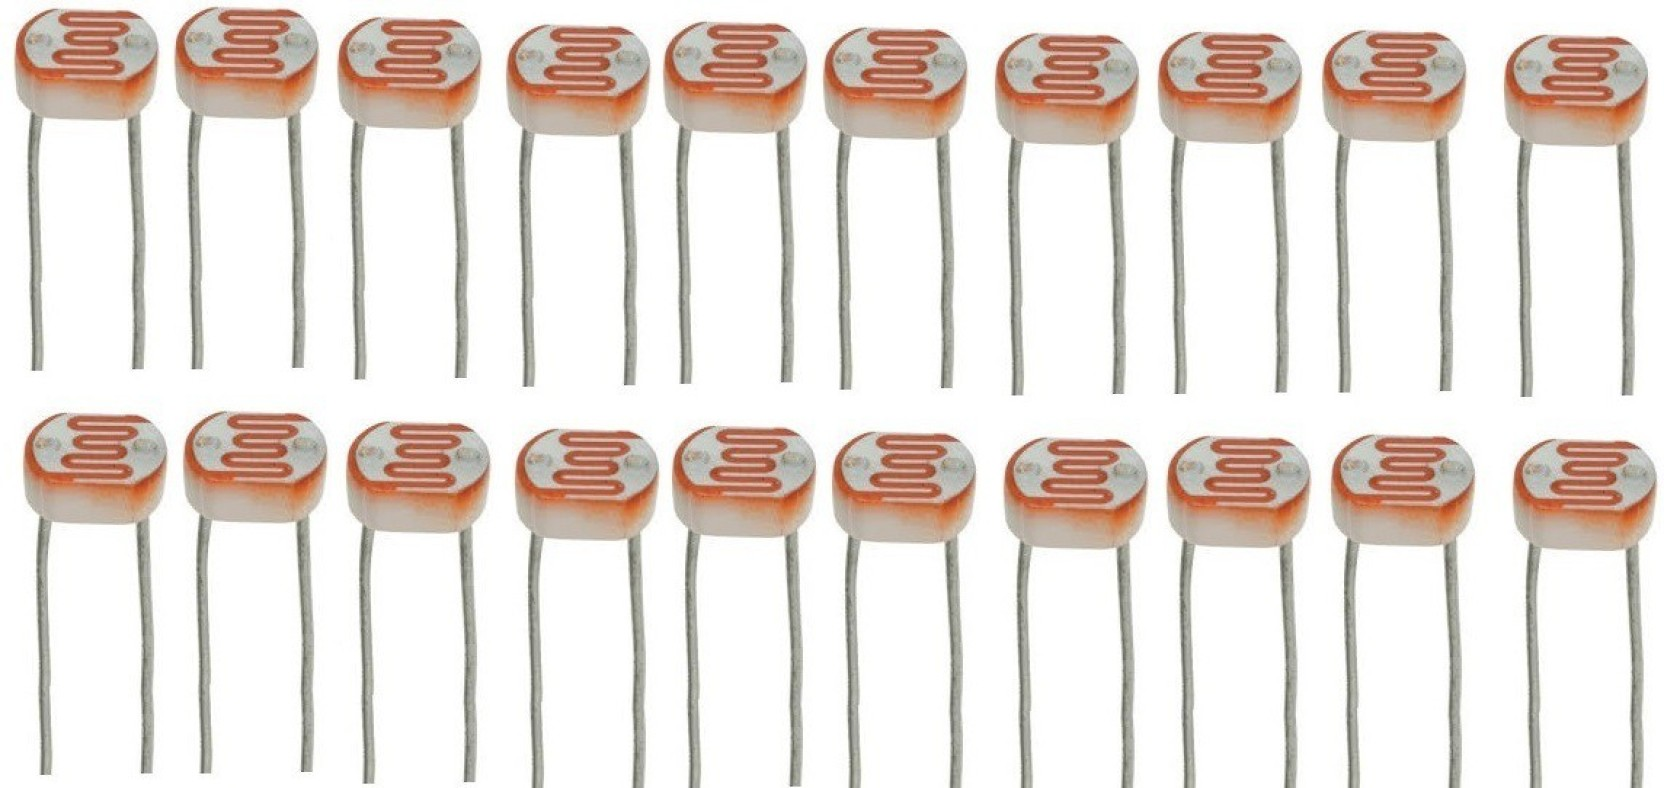 Acme Electronics 20 X Ldr Photocell Sensor Light Dependent Resistor For Projects Electronic Components Hobby Kit Circuits 23 Add To Cart